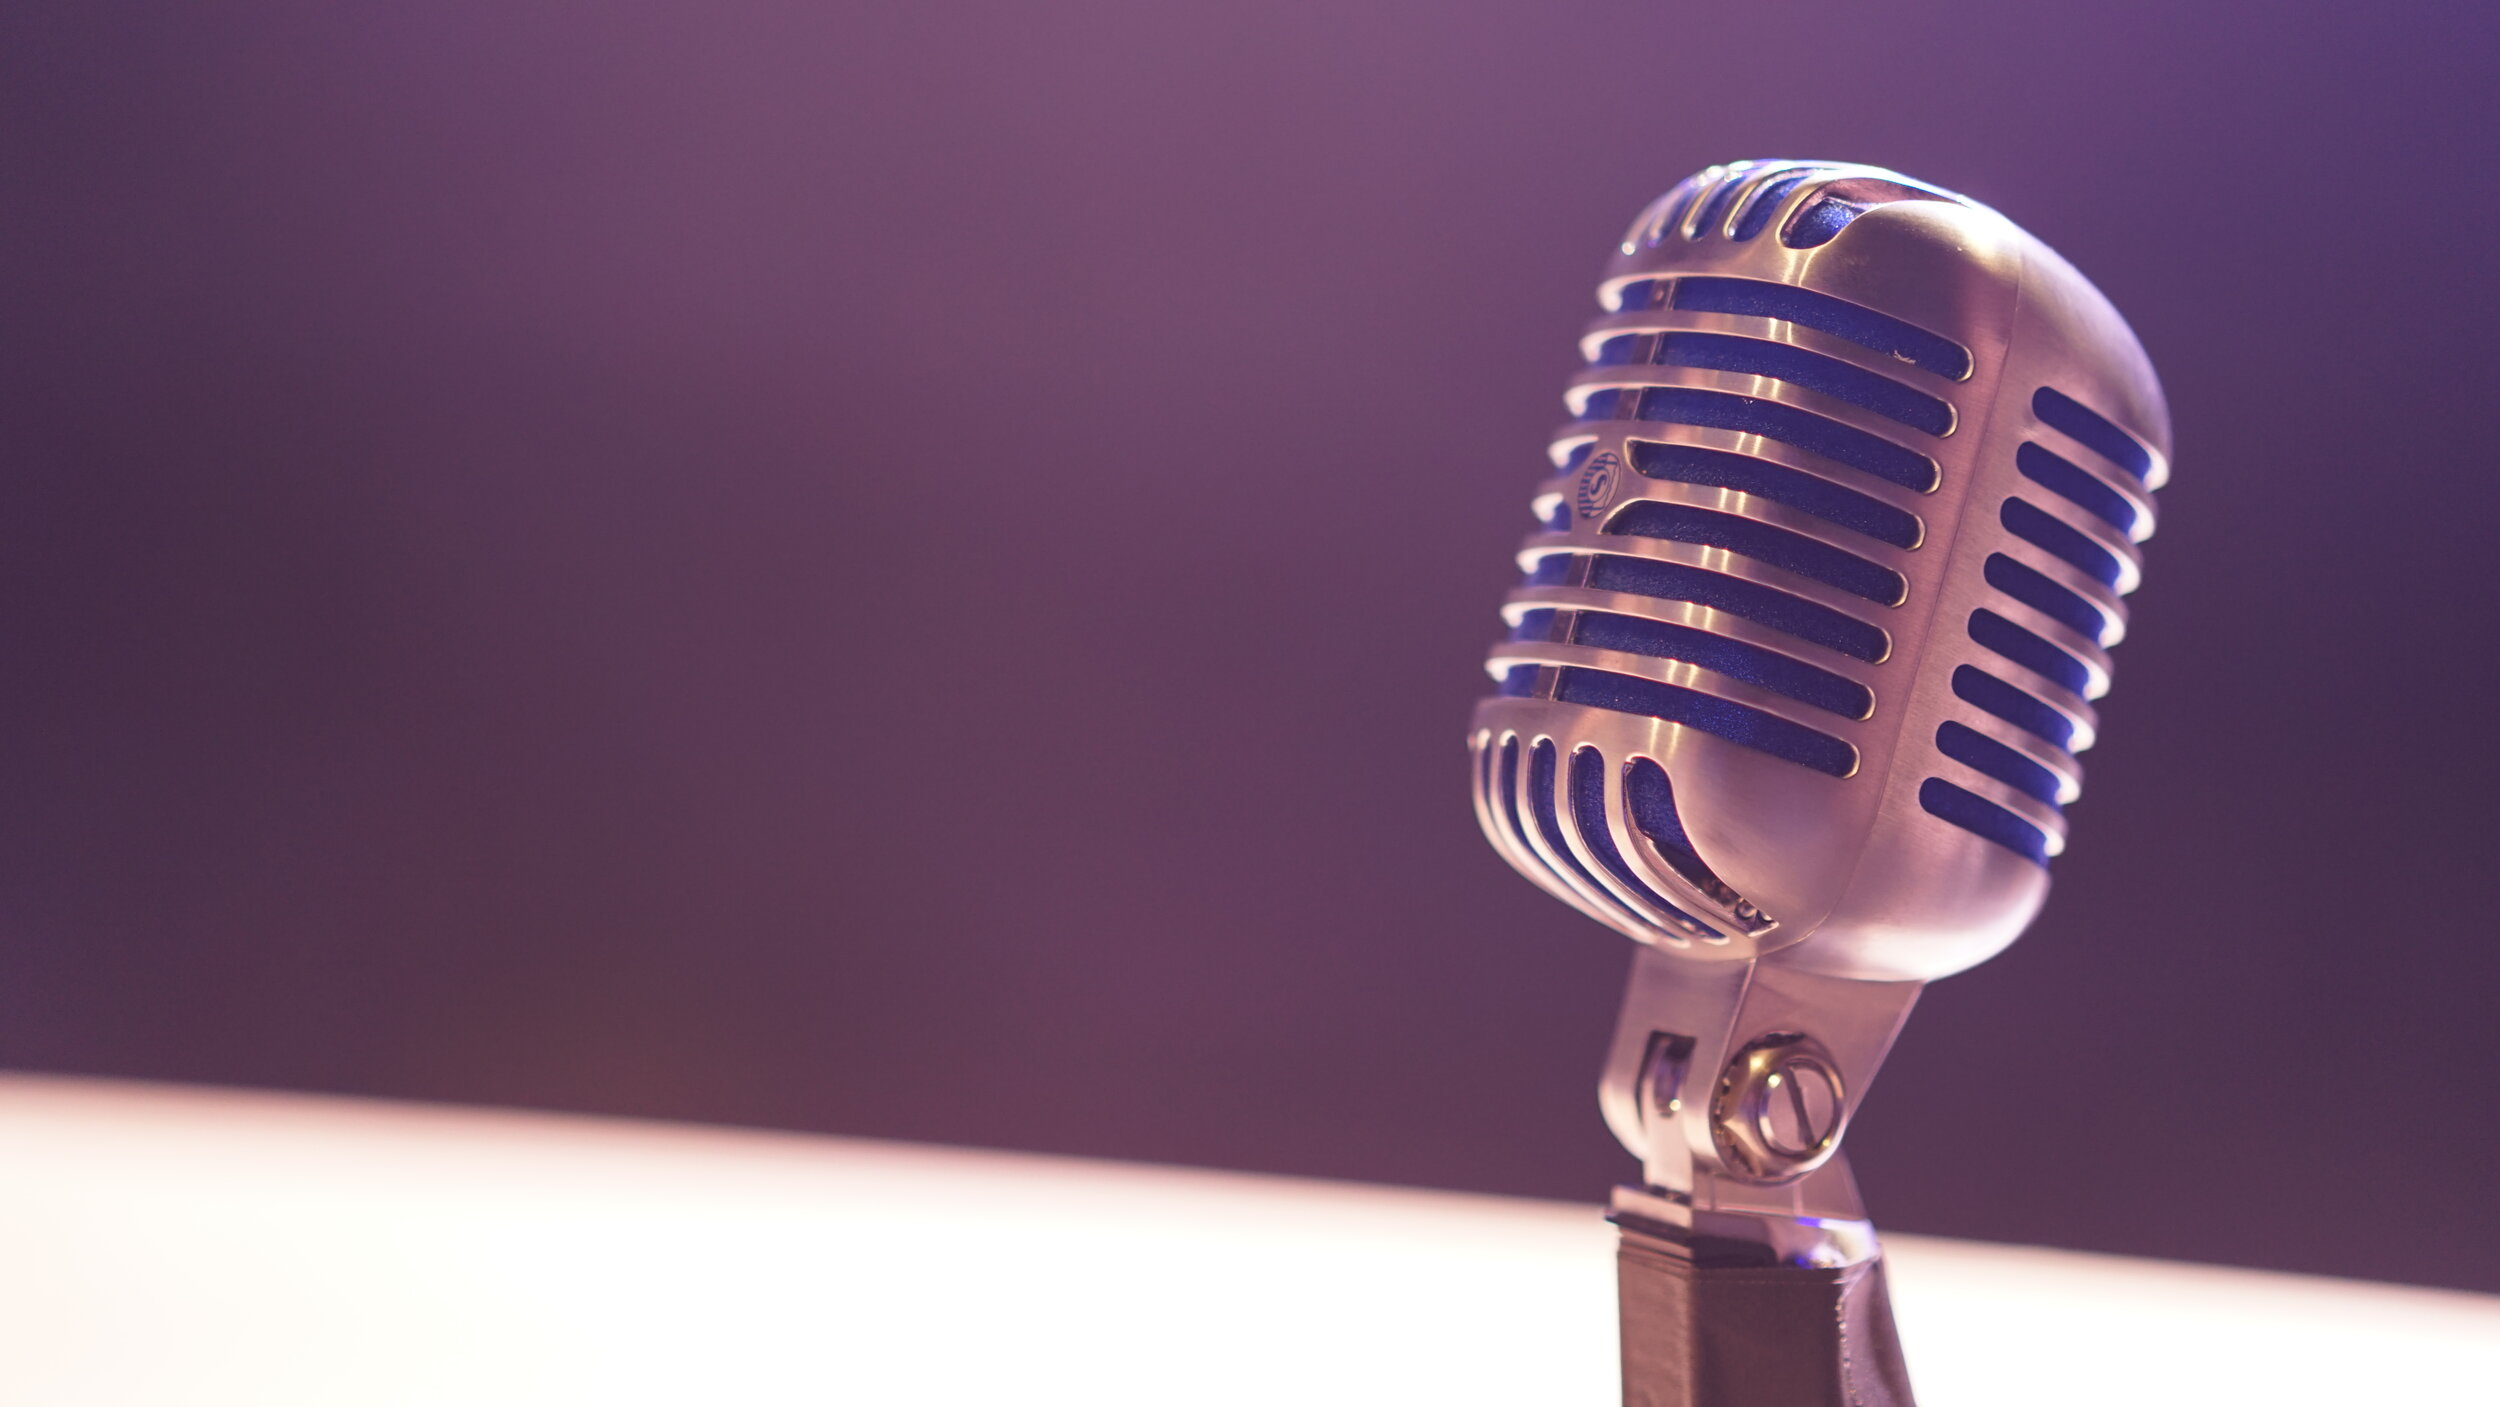 CHECK OUT OUR OPEN MIC NIGHTS -